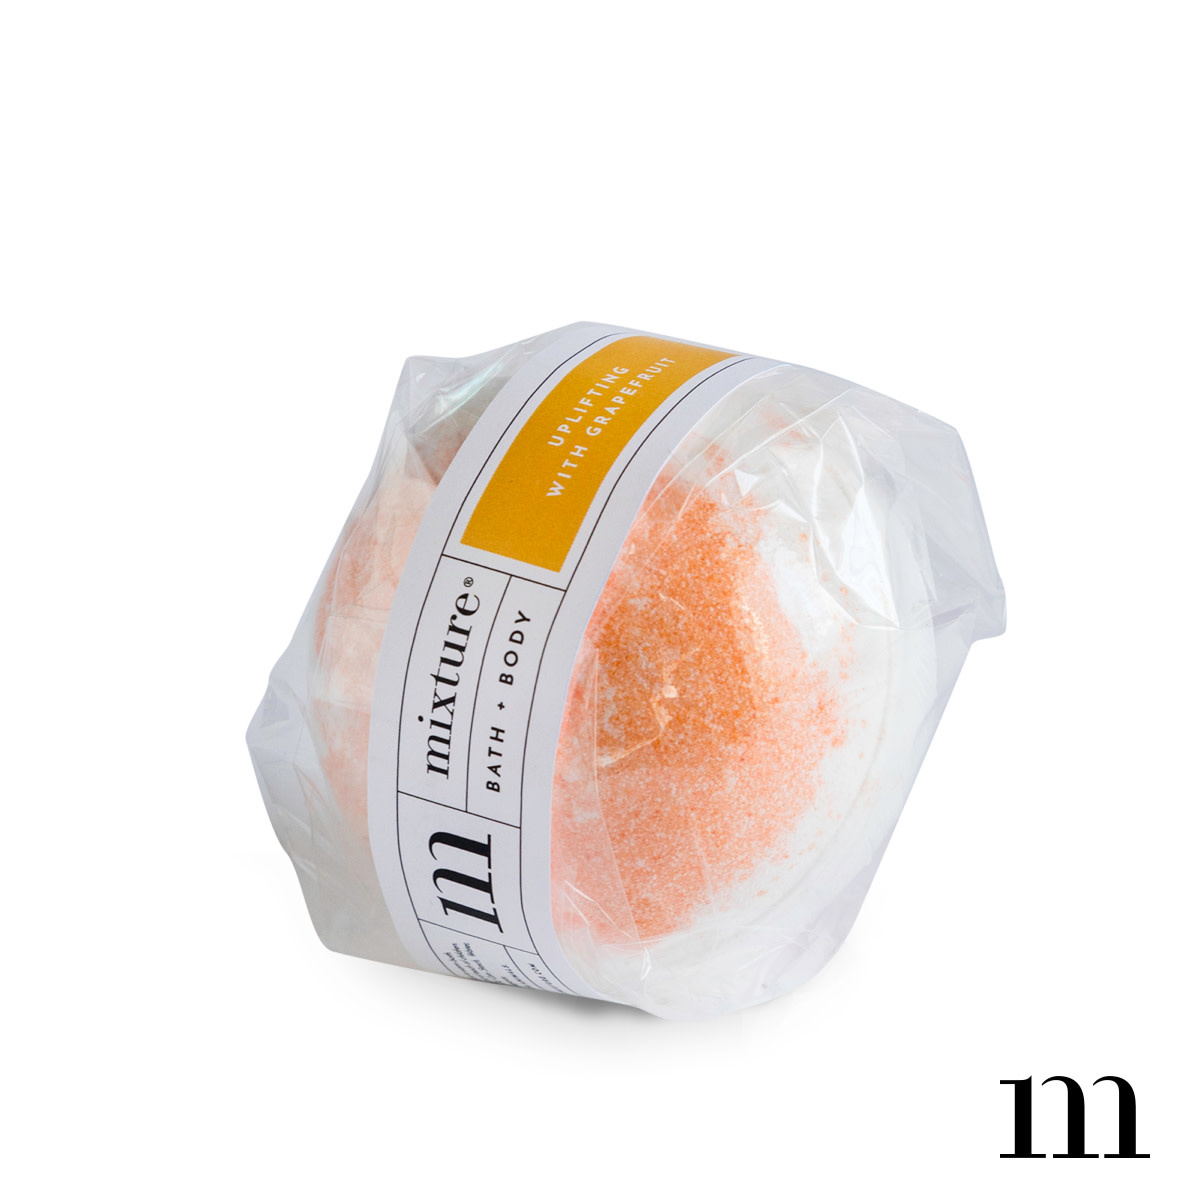 MIXTURE AROMATHERAPY BATH BOMB-UPLIFTING WITH GRAPEFRUIT